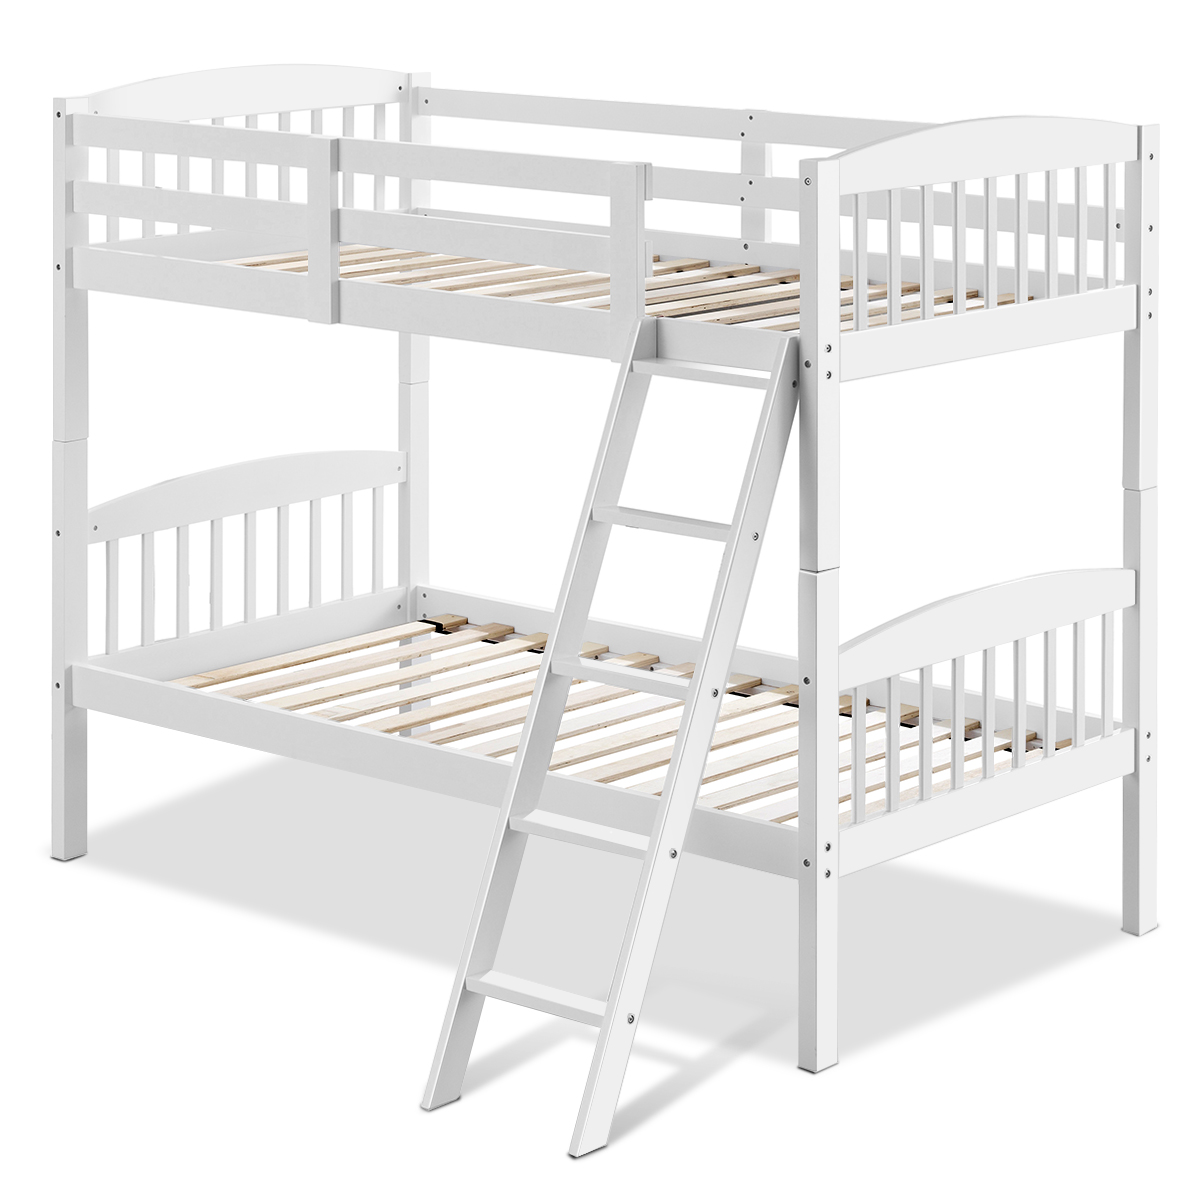 Image of: Hardwood Twin Bunk Beds Rubber Wood 2 Individual Kid Bed Ladder Guardrail White Baby Cribs Aliexpress